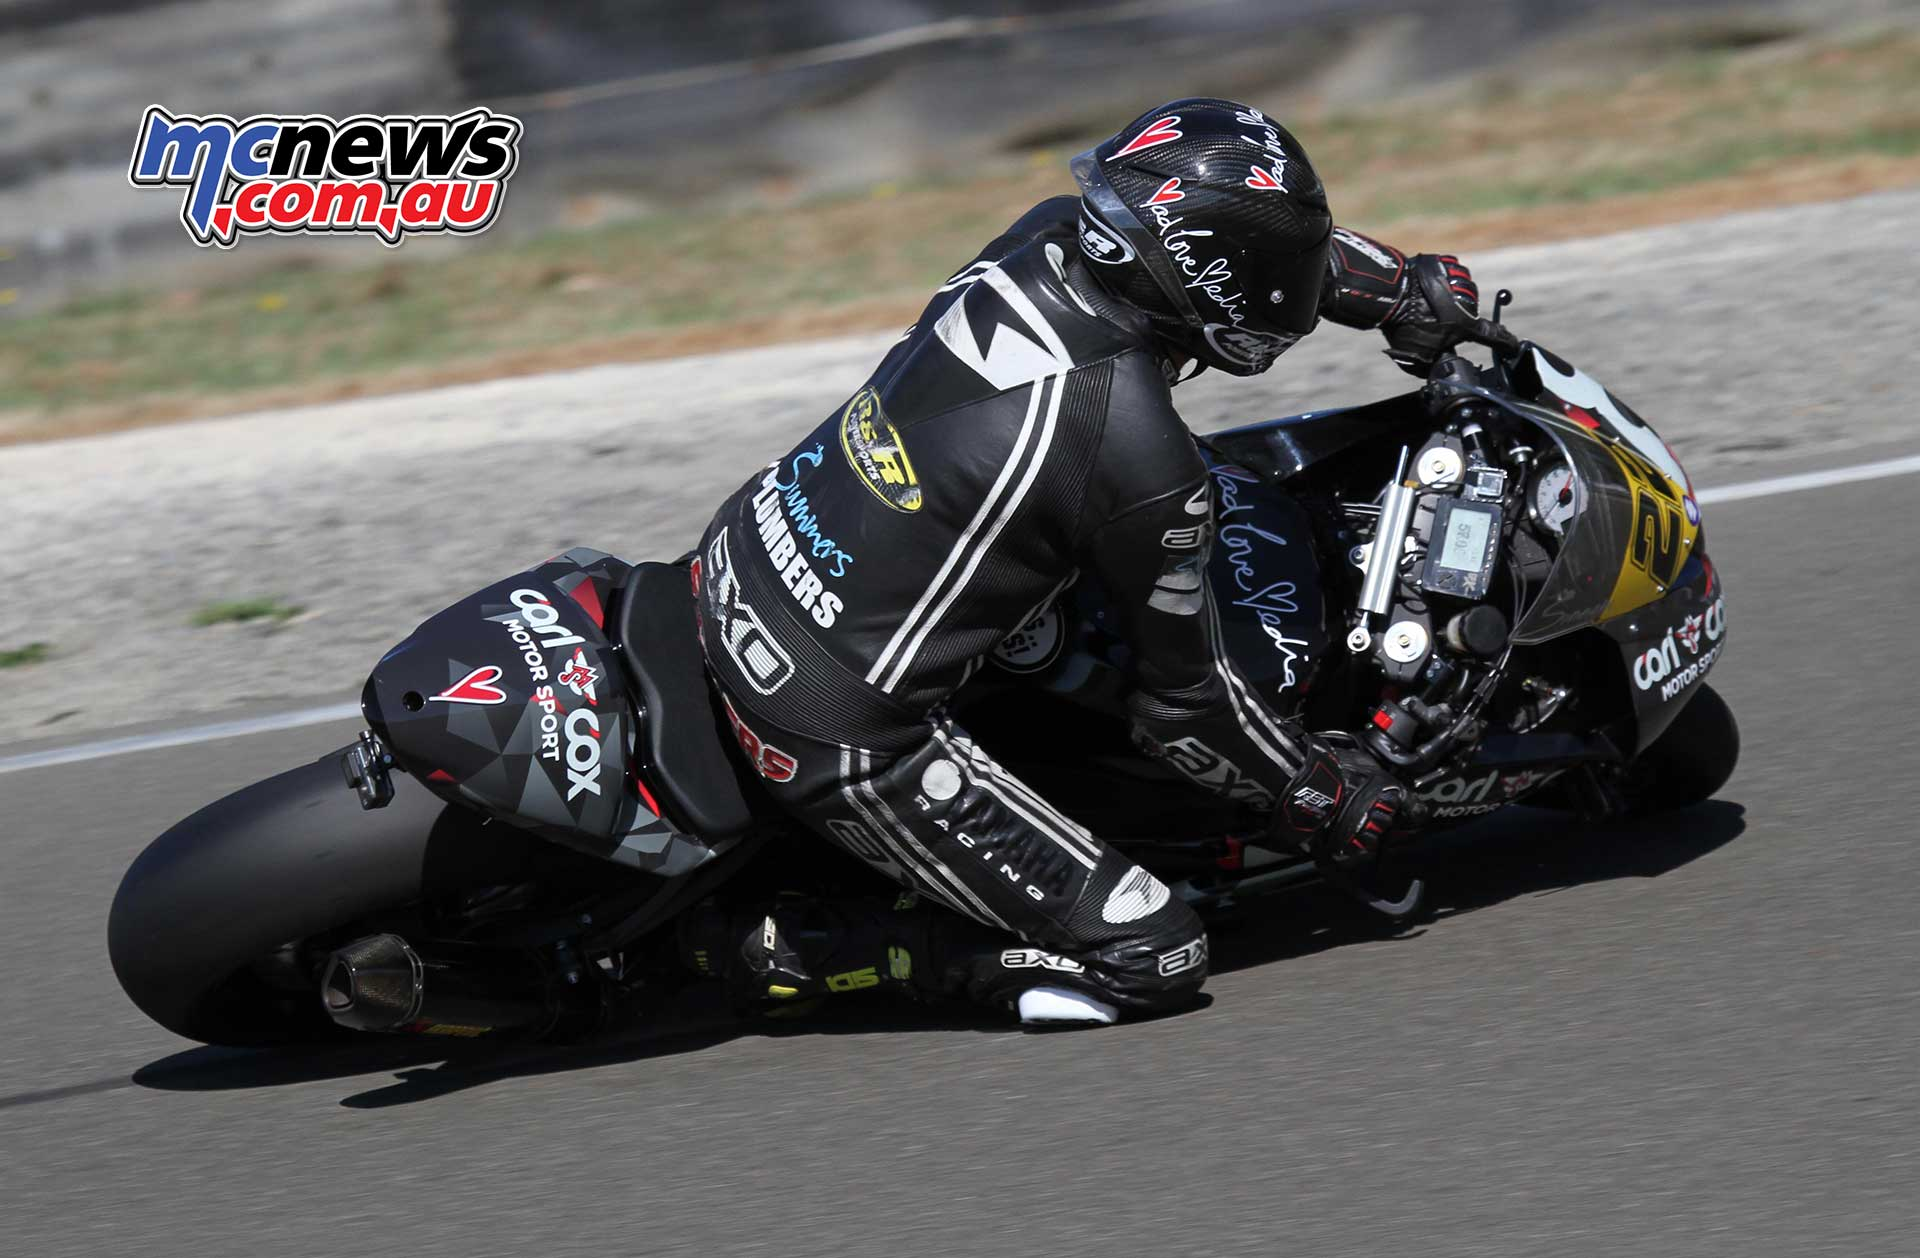 Toby Summers falls from his Kawasaki ZX-6R during F2 600 practice. He walked away